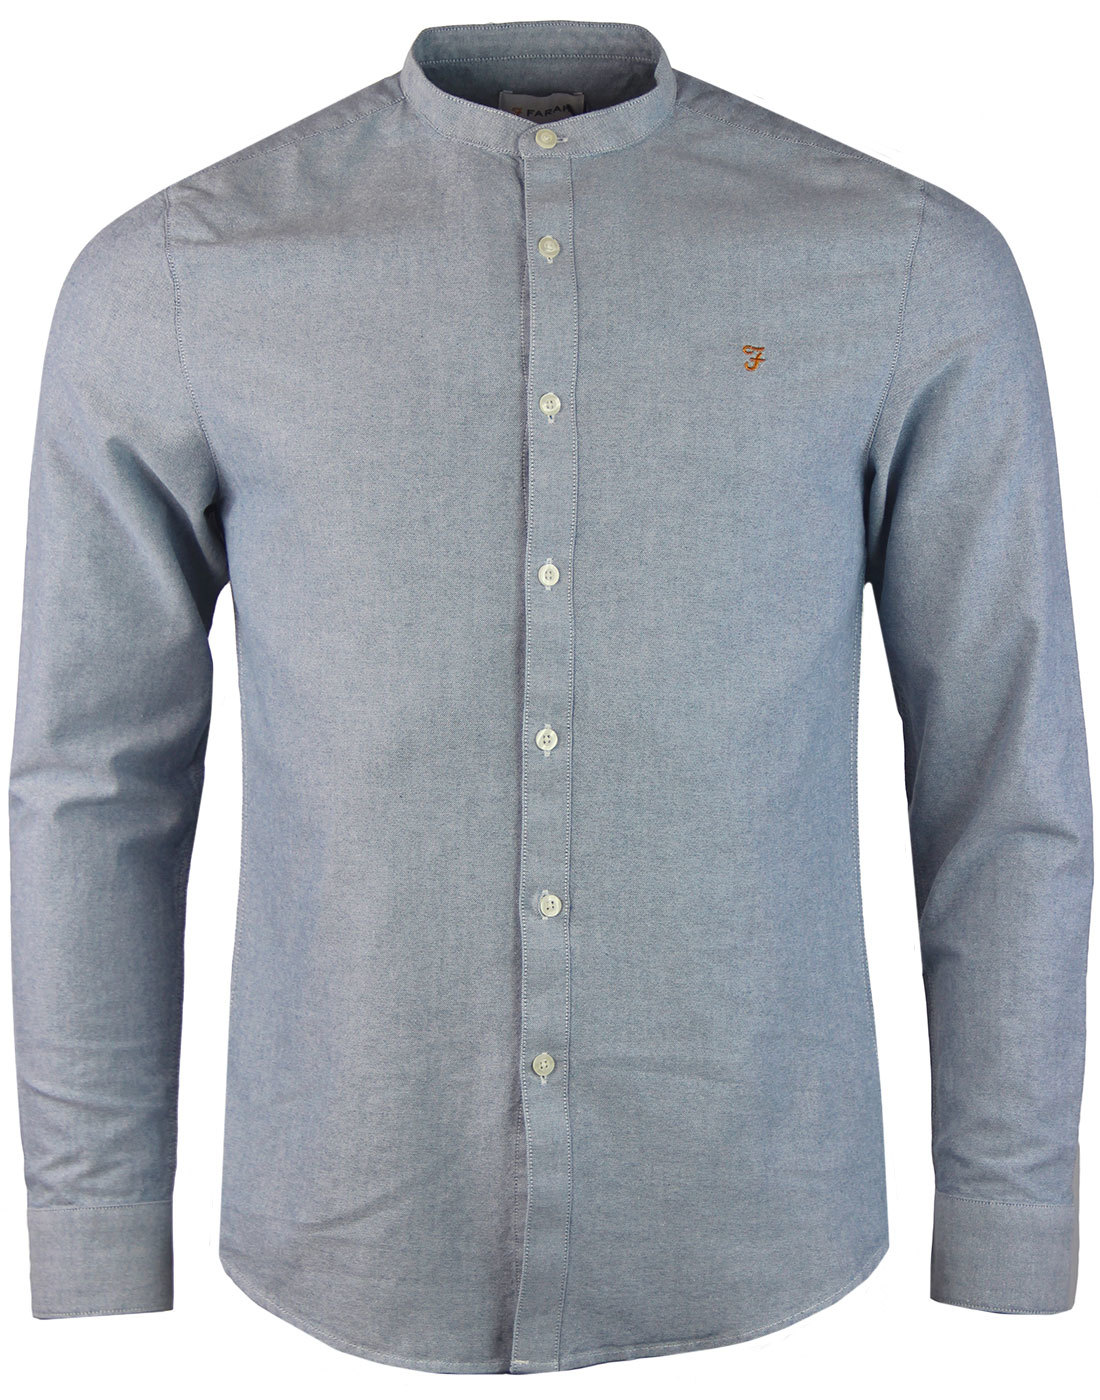 Brewer FARAH Mod L/S Grandad Collar Oxford Shirt